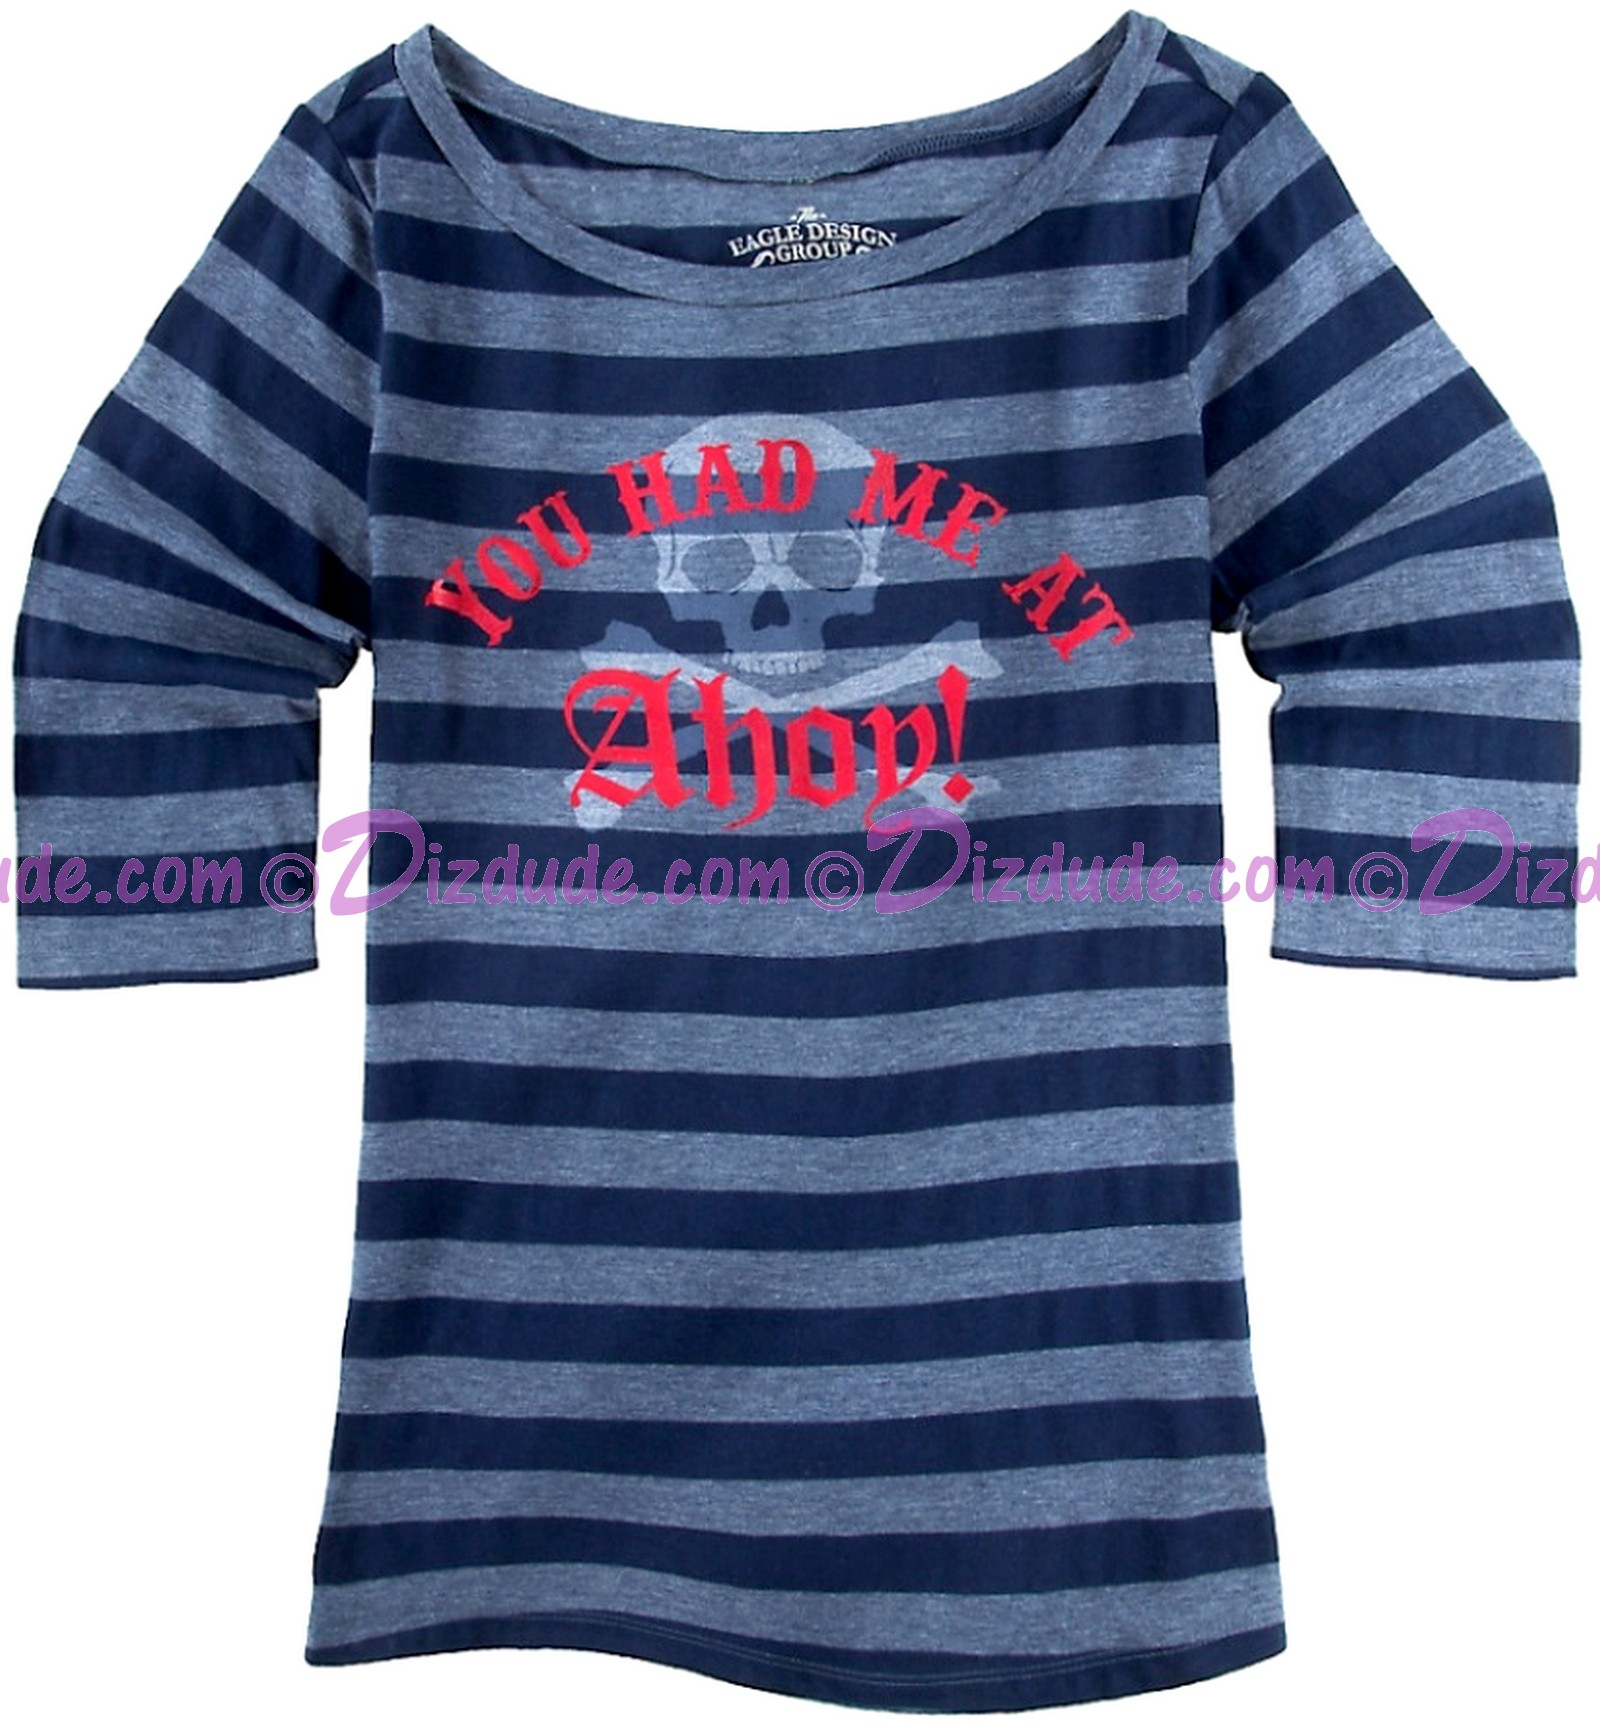 You Had Me At AHOY! Adult T-shirt (Tee, Tshirt or T shirt) ~ Disney's Pirates Of The Caribbean